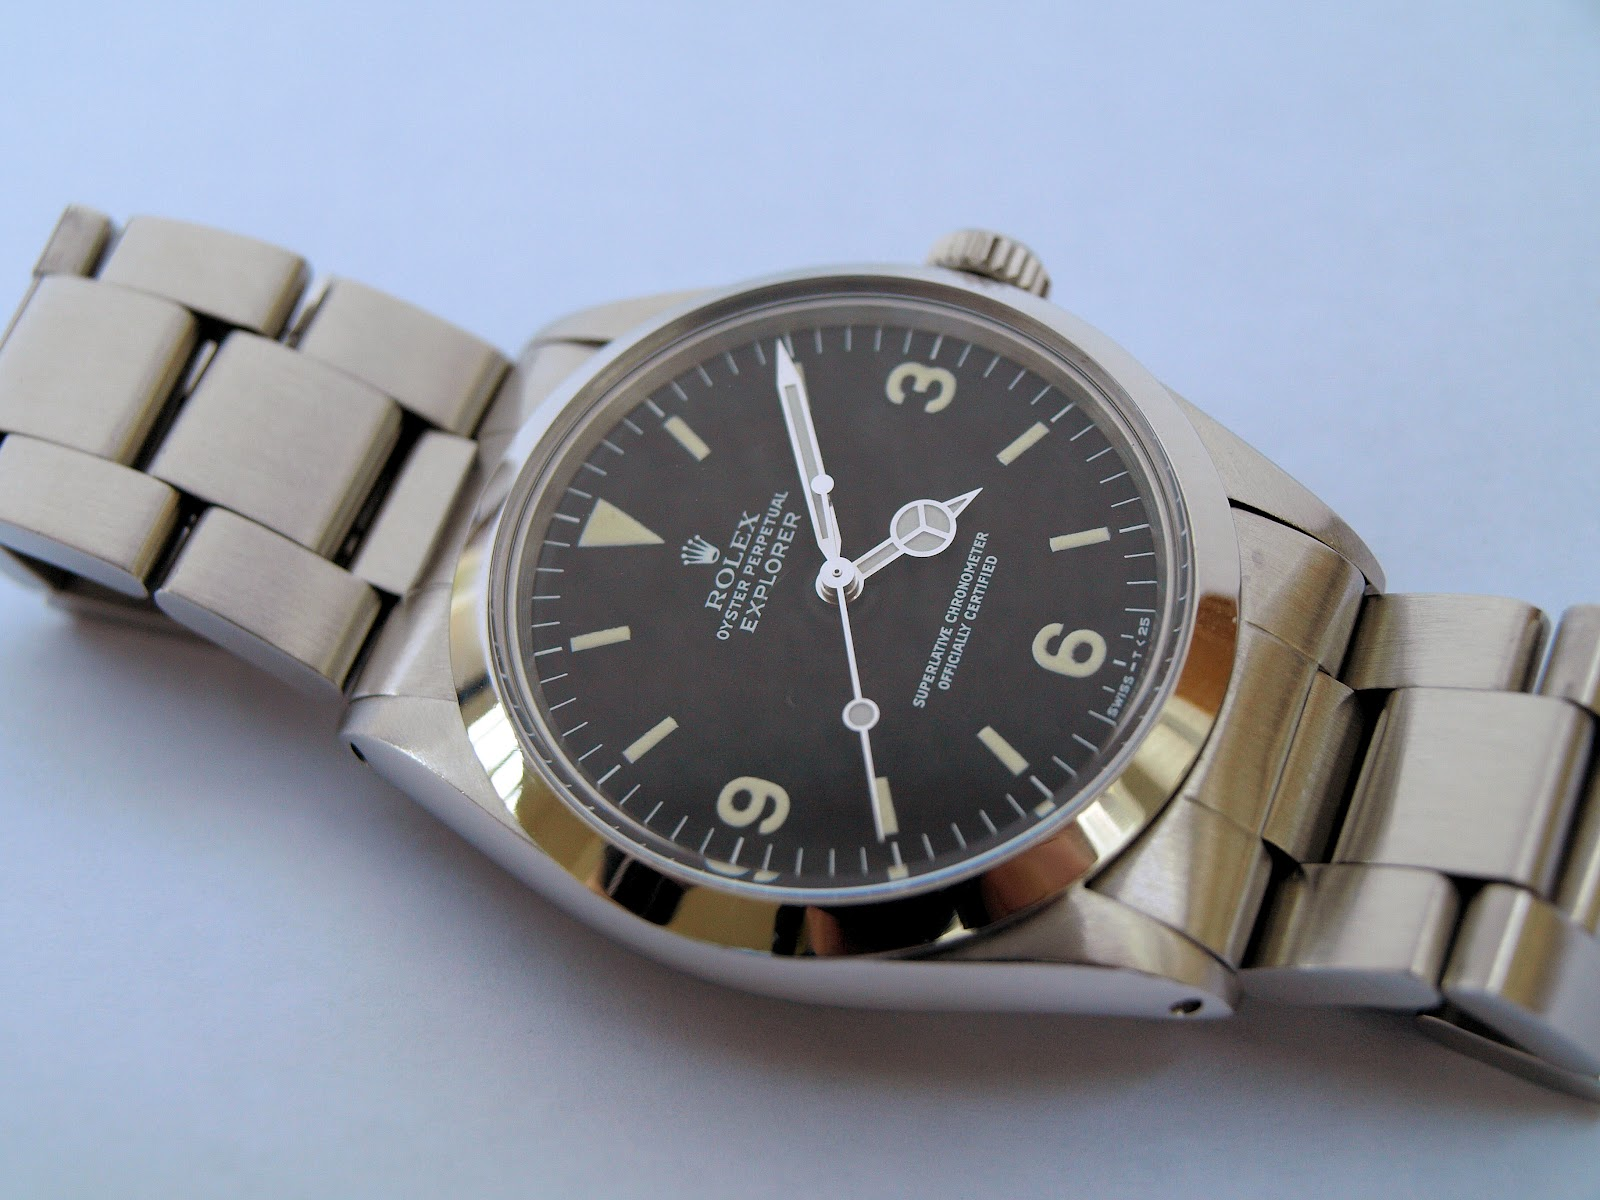 Vintage rolex oyster the ultimate classic wristwatch grey fox for Vintage rolex oyster